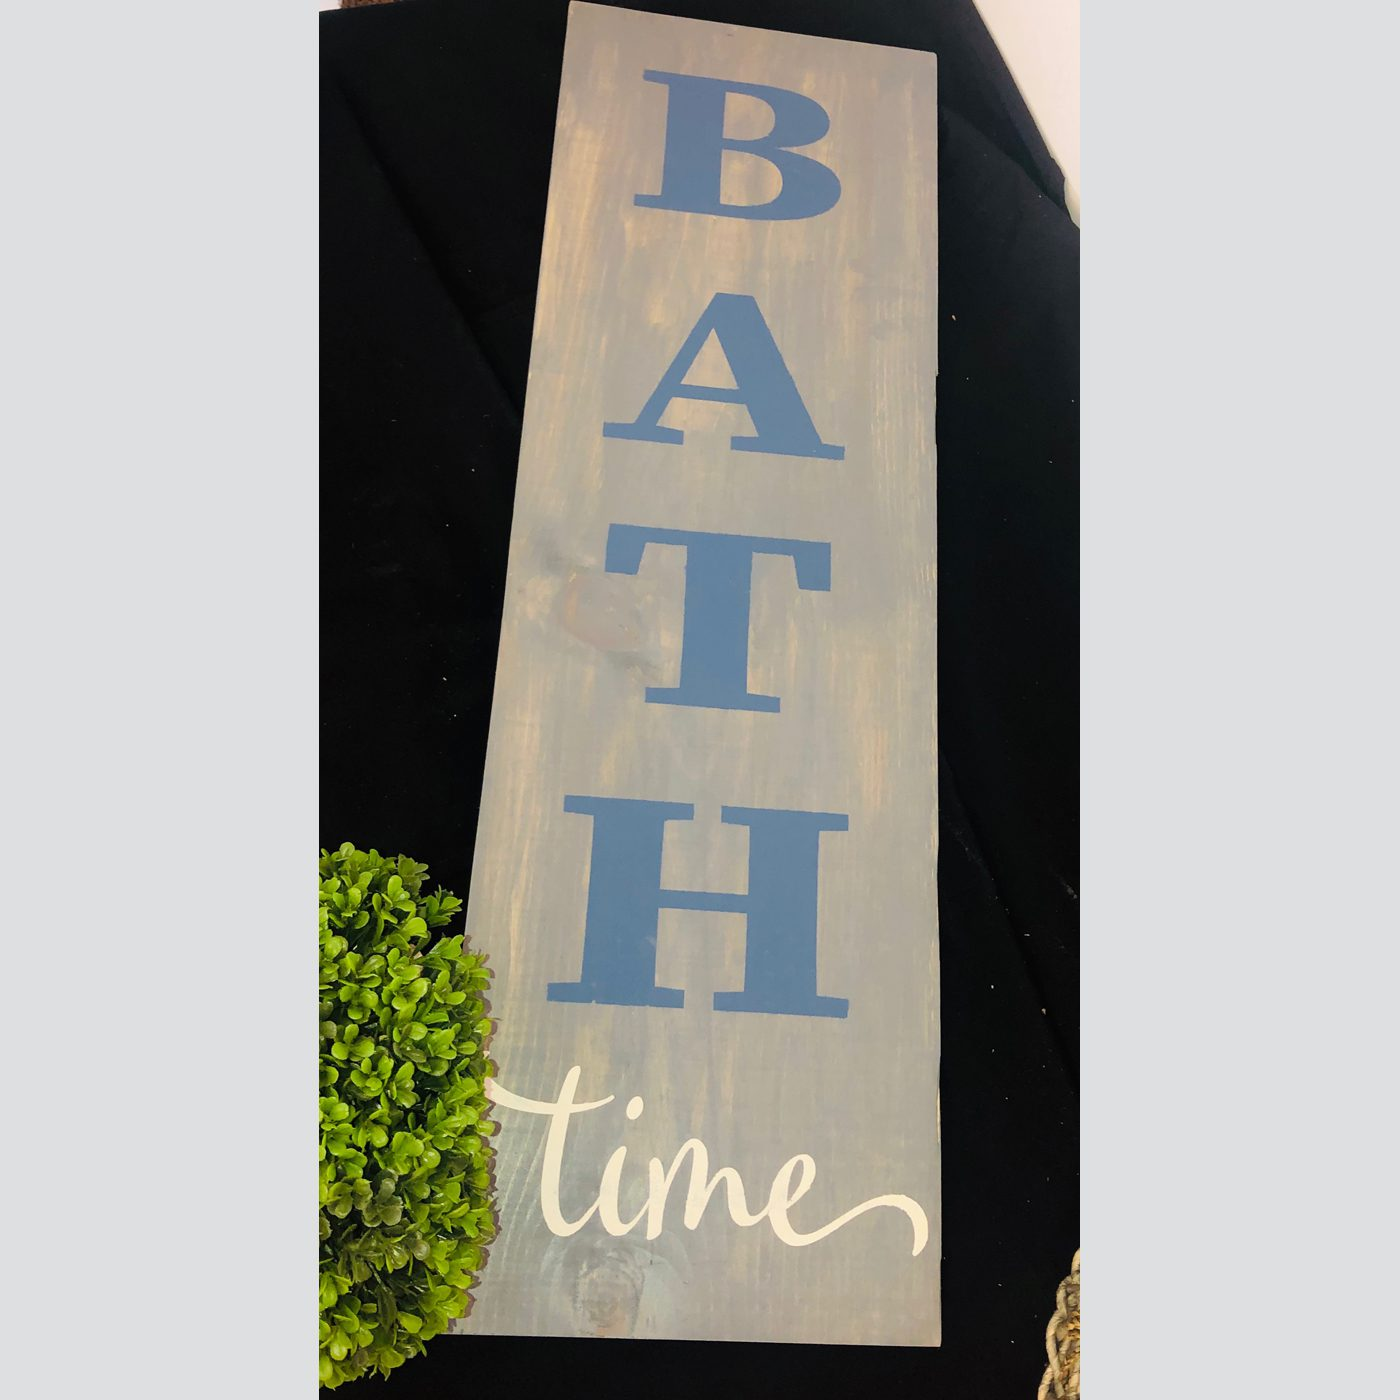 Bathtime DIY Wood Bathroom Sign